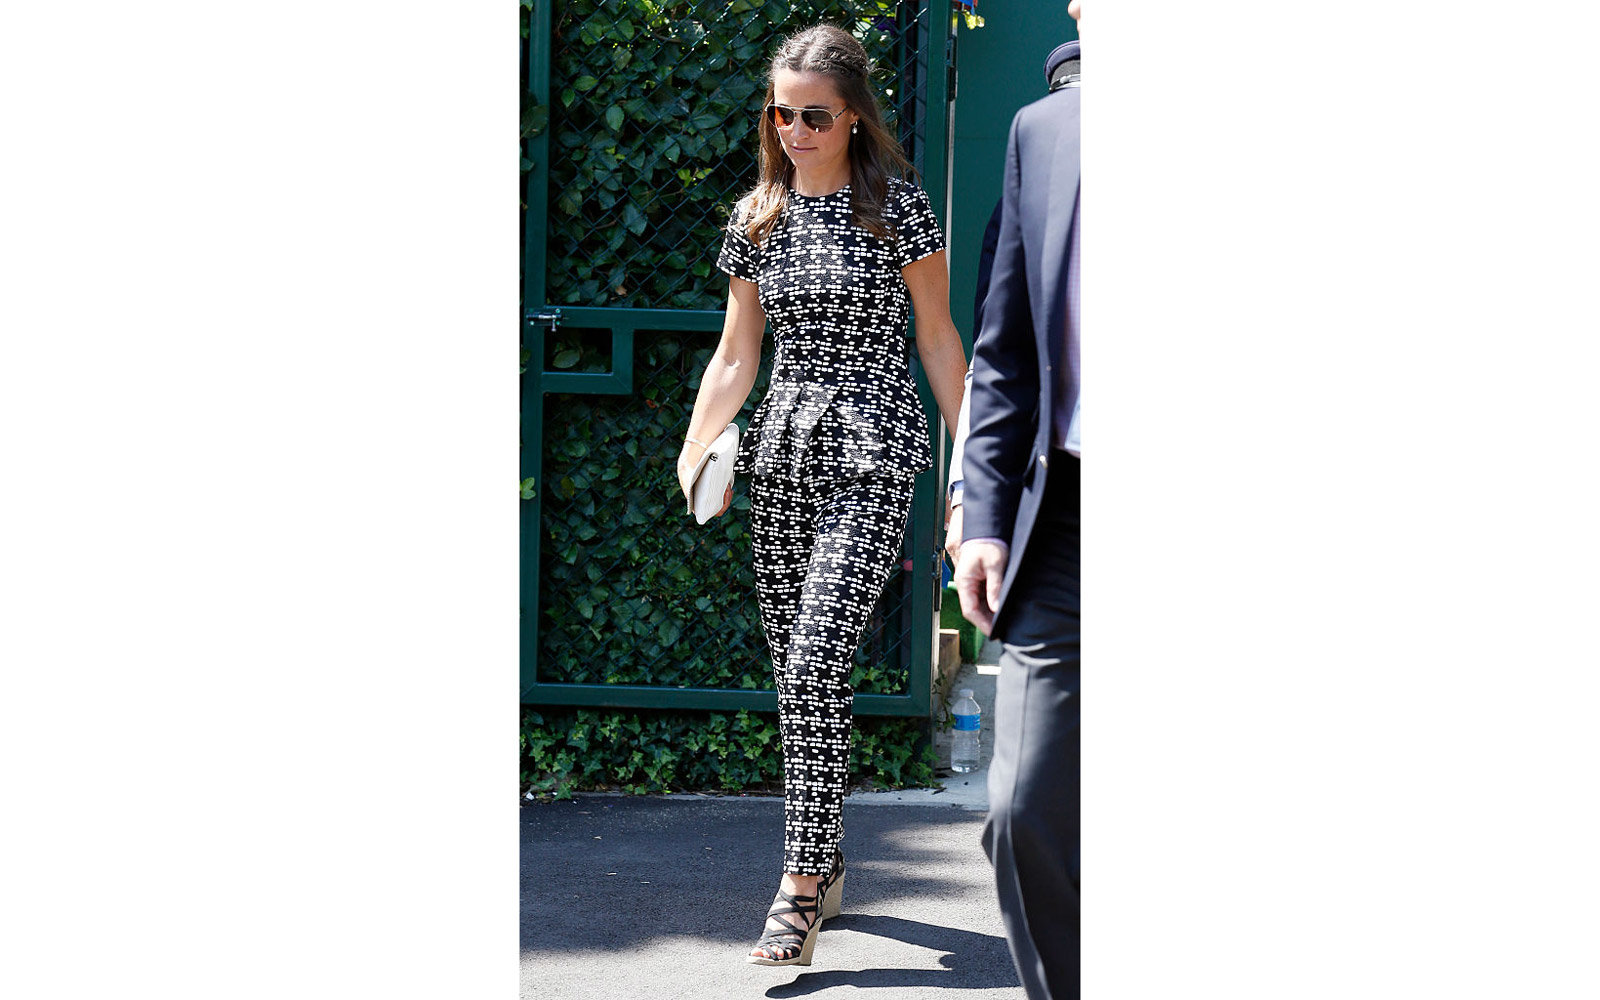 LONDON, UNITED KINGDOM - JULY 9:  Pippa Middleton seen arriving at Wimbledon on July 9, 2015 in London, England. Photo by Neil Mockford/Alex Huckle/GC Images)